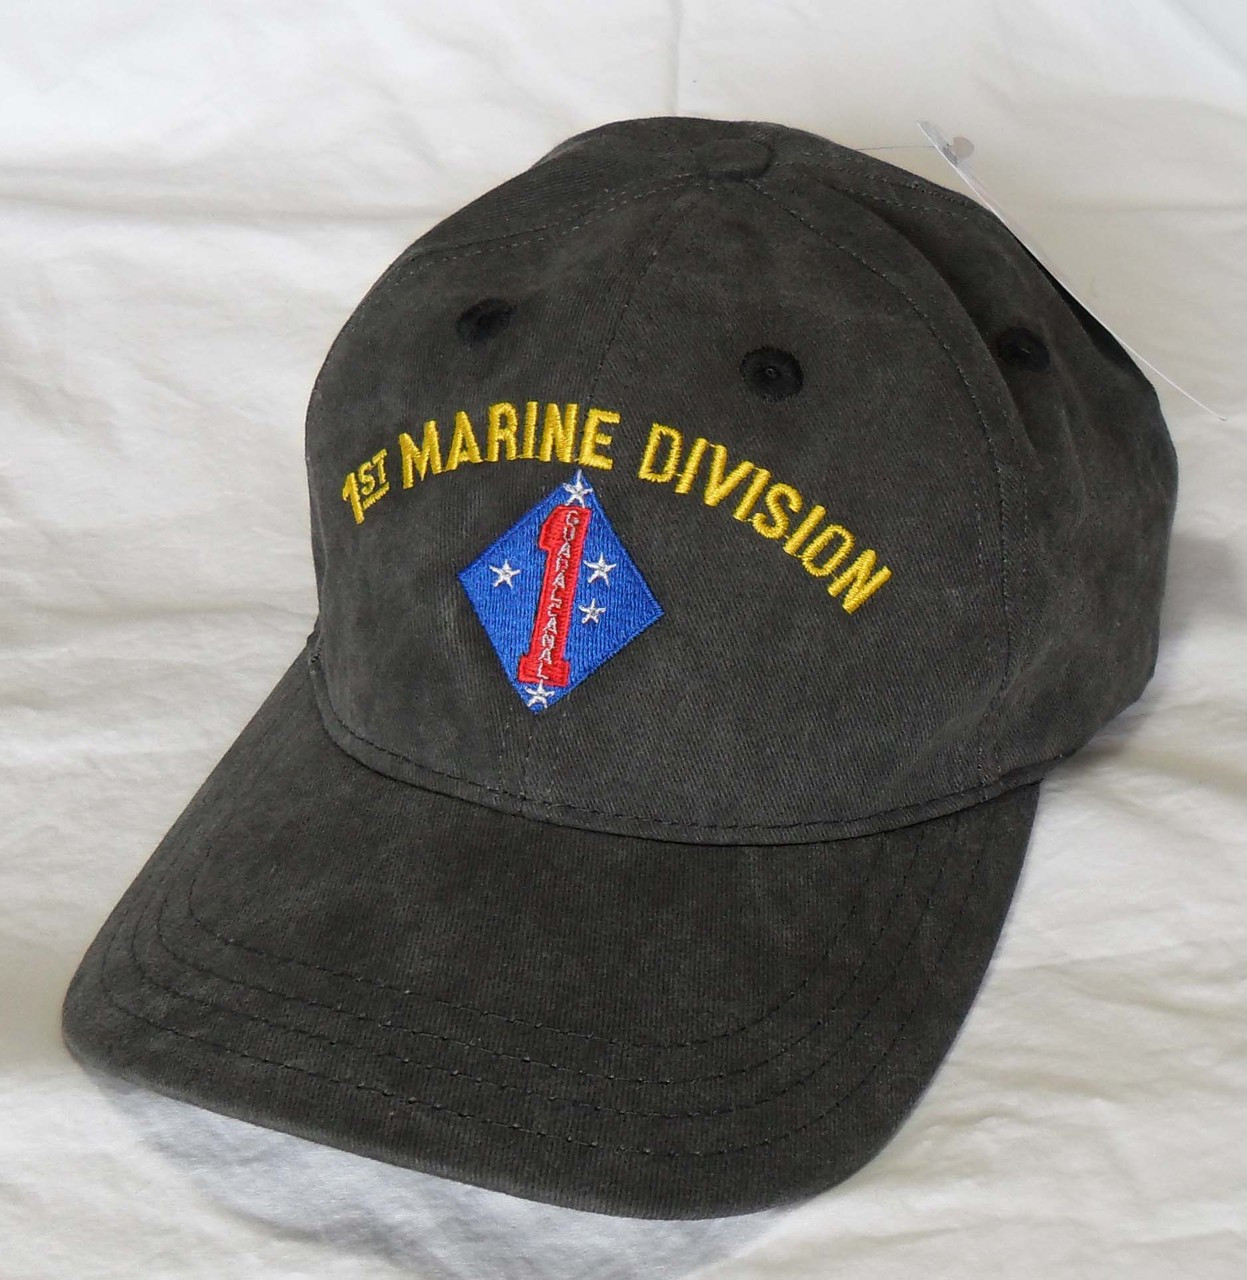 b7a559a03ff1e US Military 1st MARINE Division USMC Officially Licensed Made In USA  Military Hat Baseball Cap